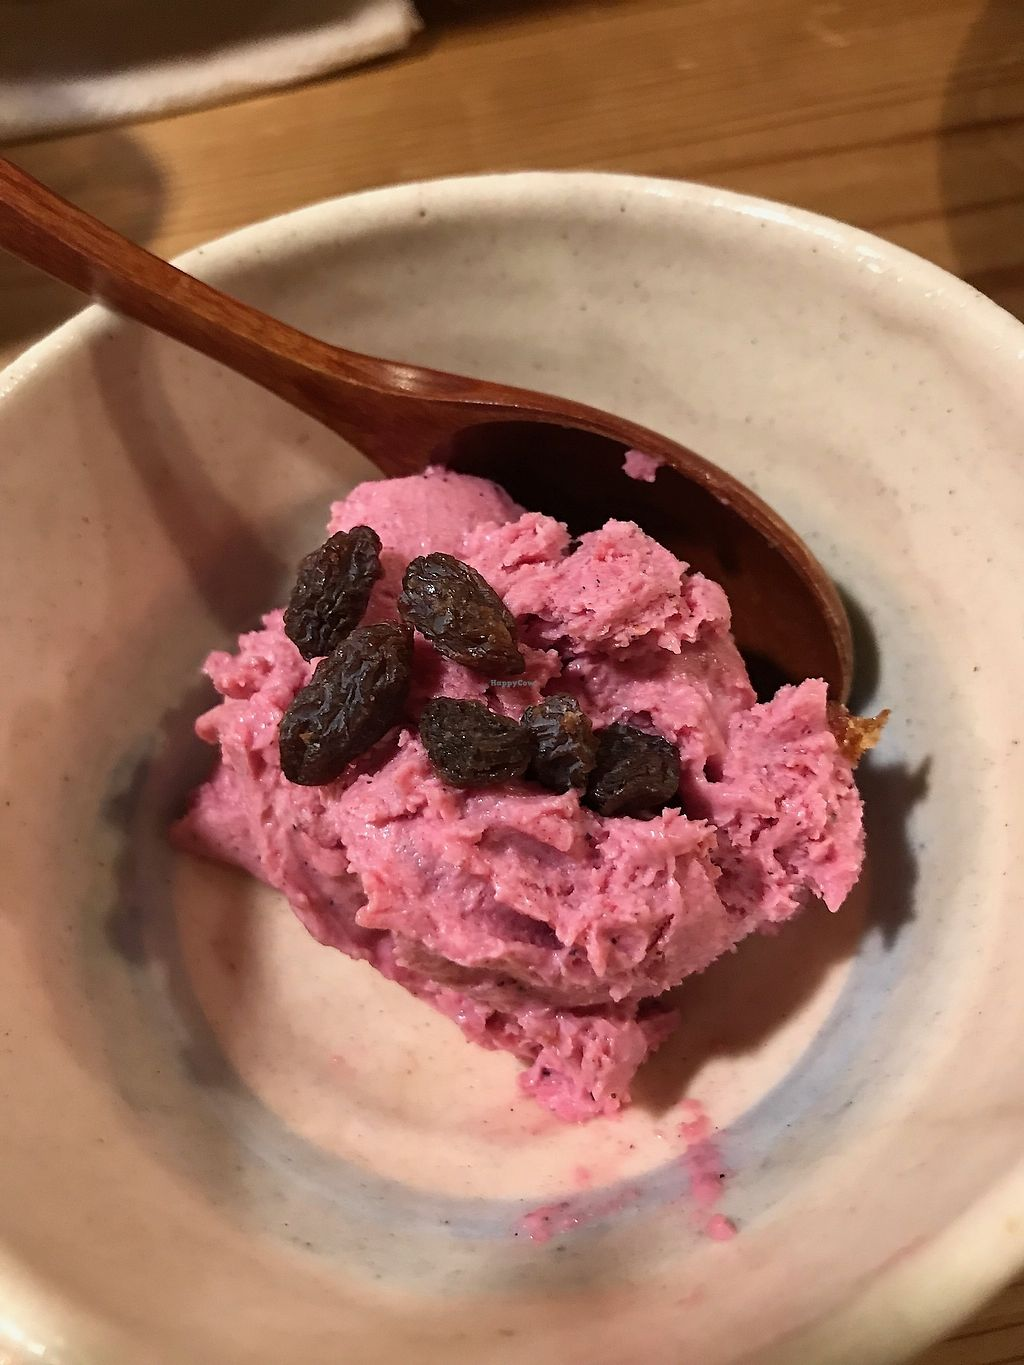 """Photo of Megumi  by <a href=""""/members/profile/zubora"""">zubora</a> <br/>Vegan ice cream with raisins on top <br/> October 4, 2017  - <a href='/contact/abuse/image/83651/311547'>Report</a>"""